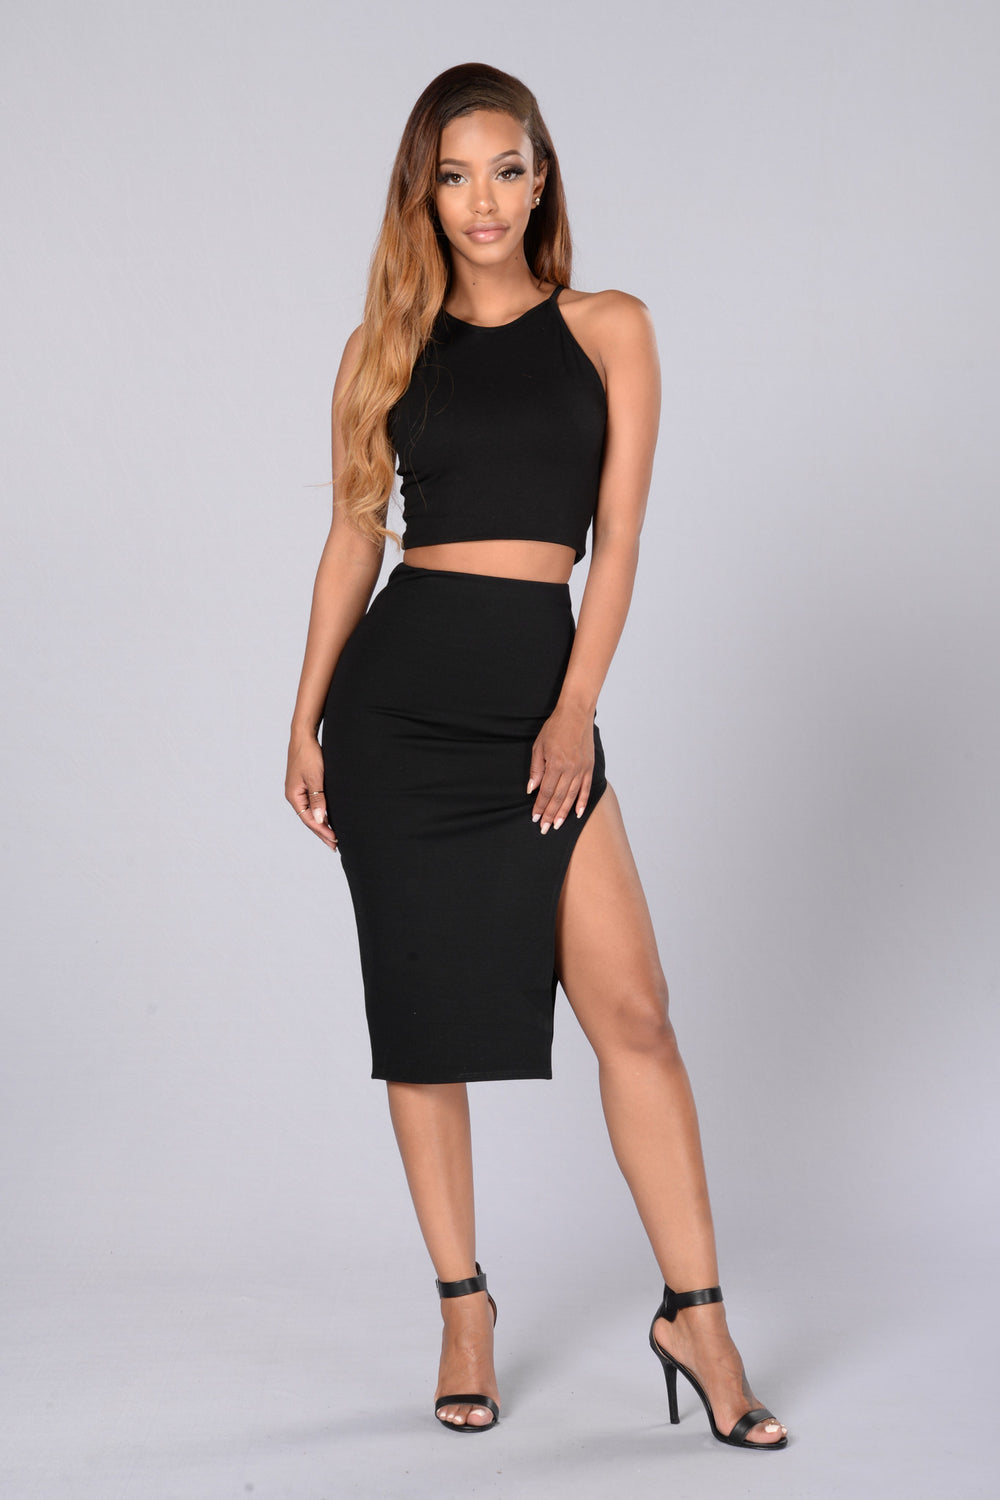 Cut It Skirt - Black